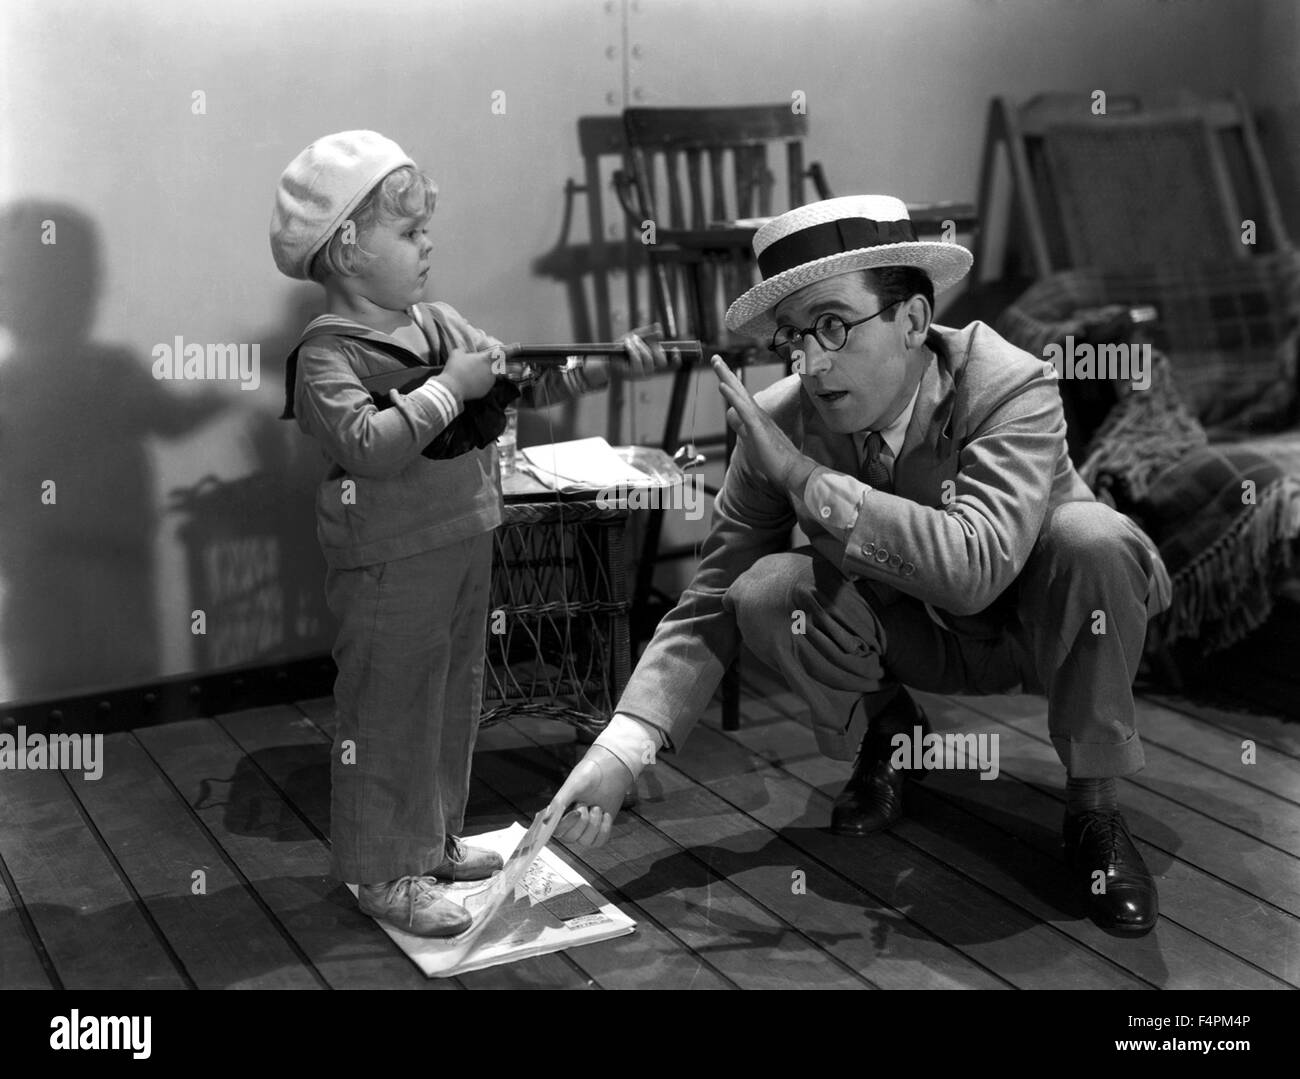 Harold Lloyd / eet First / 1930 directed by Clyde Bruckman [Paramount Pictures] - Stock Image